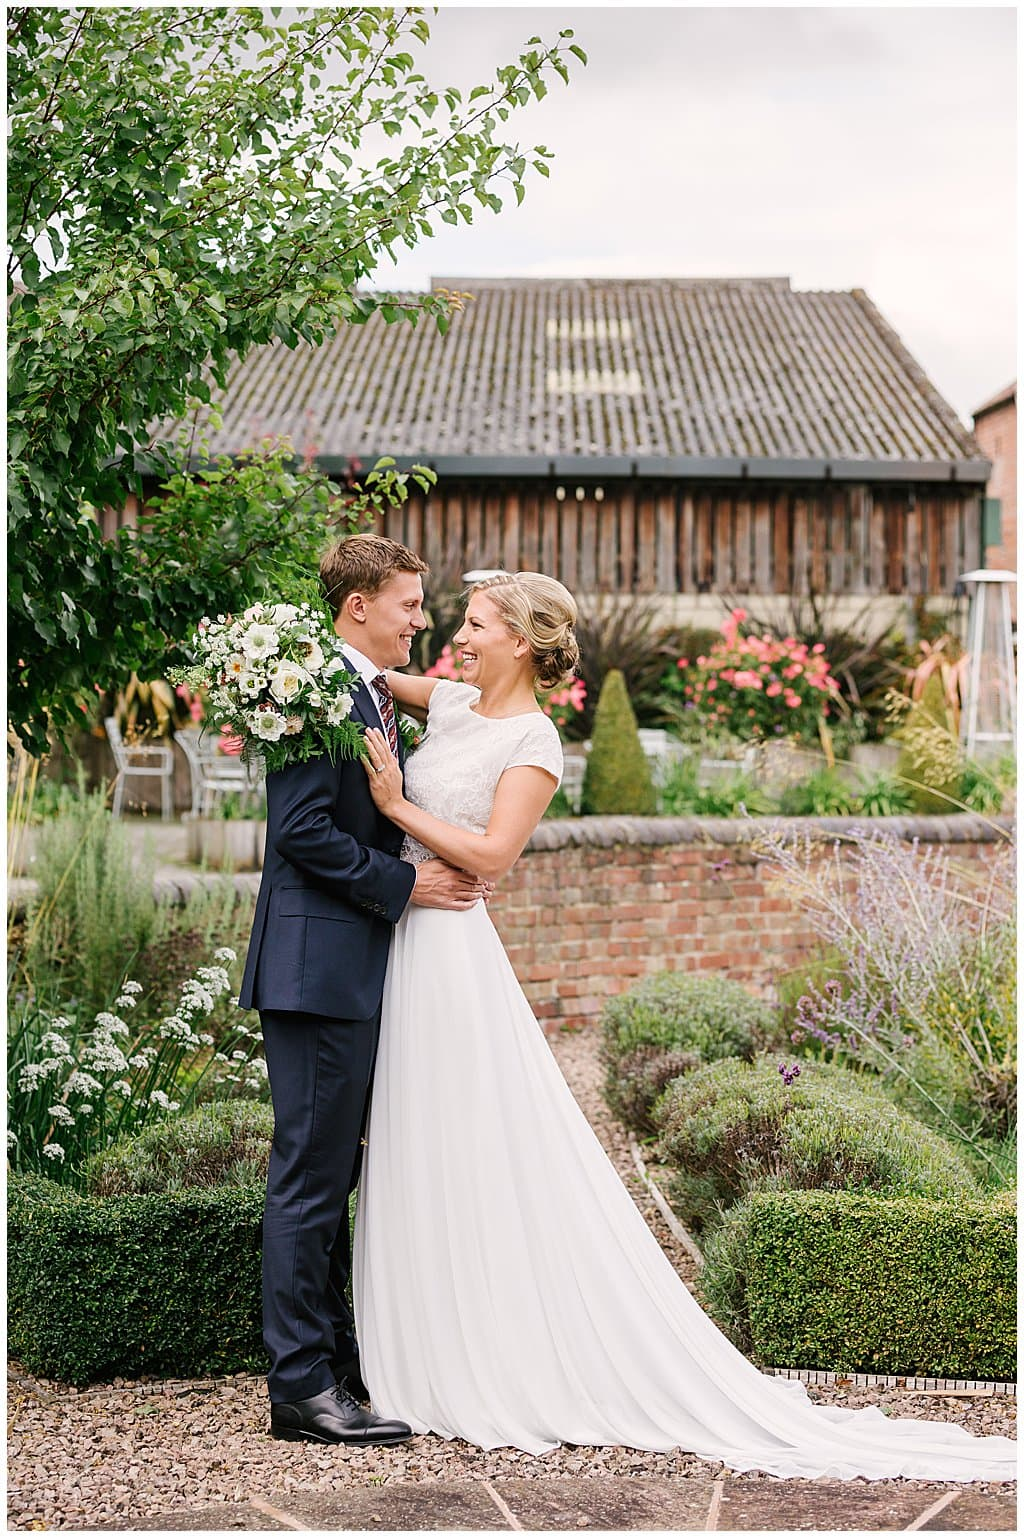 Couple portrait in gardens at a small and intimate wedding in Worcestershire